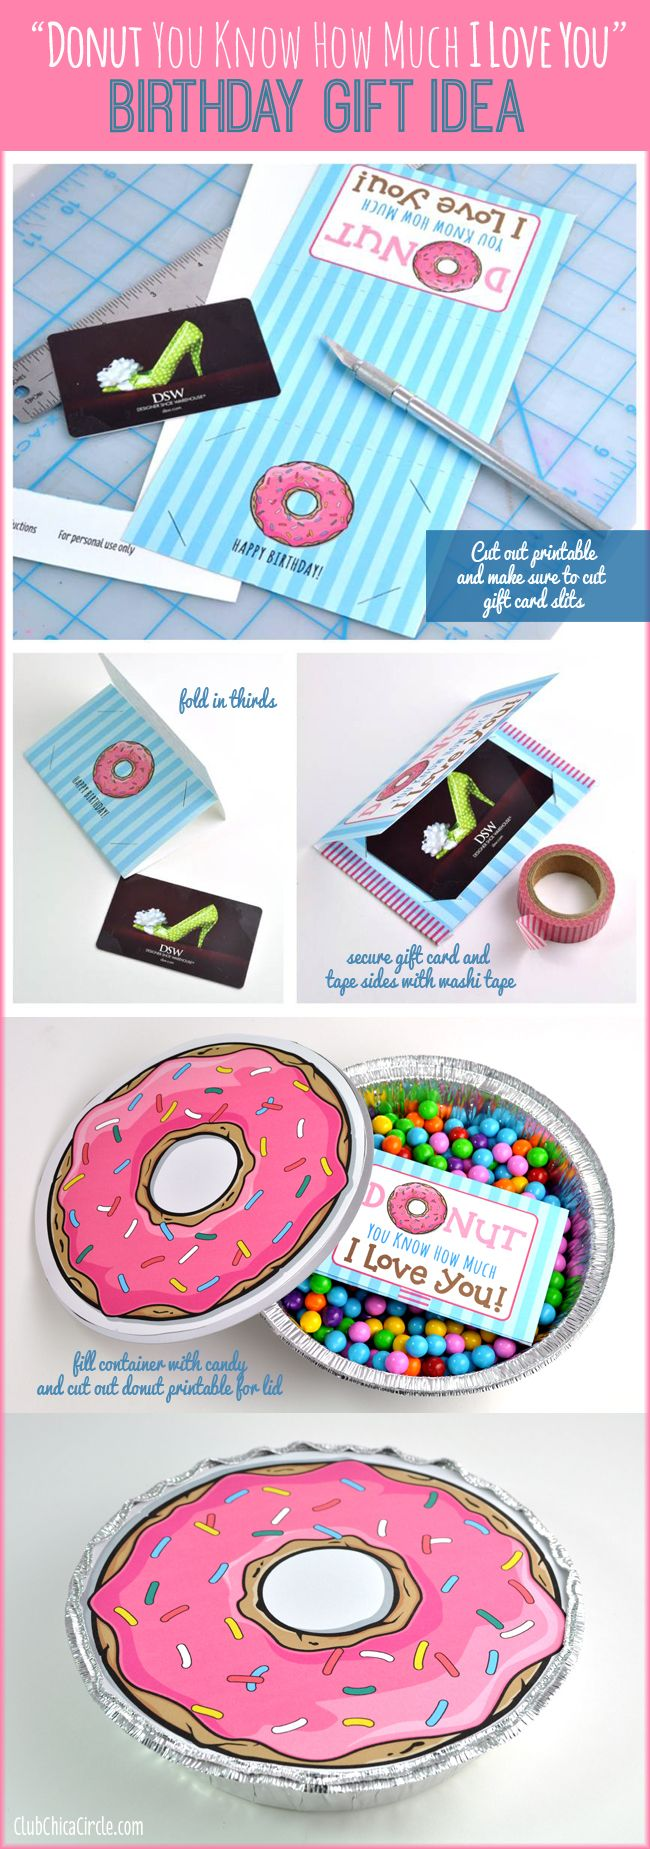 Donut Quote Printable for Gift Card Holder and Homemade Birthday Gift Idea from Club Chica Circle